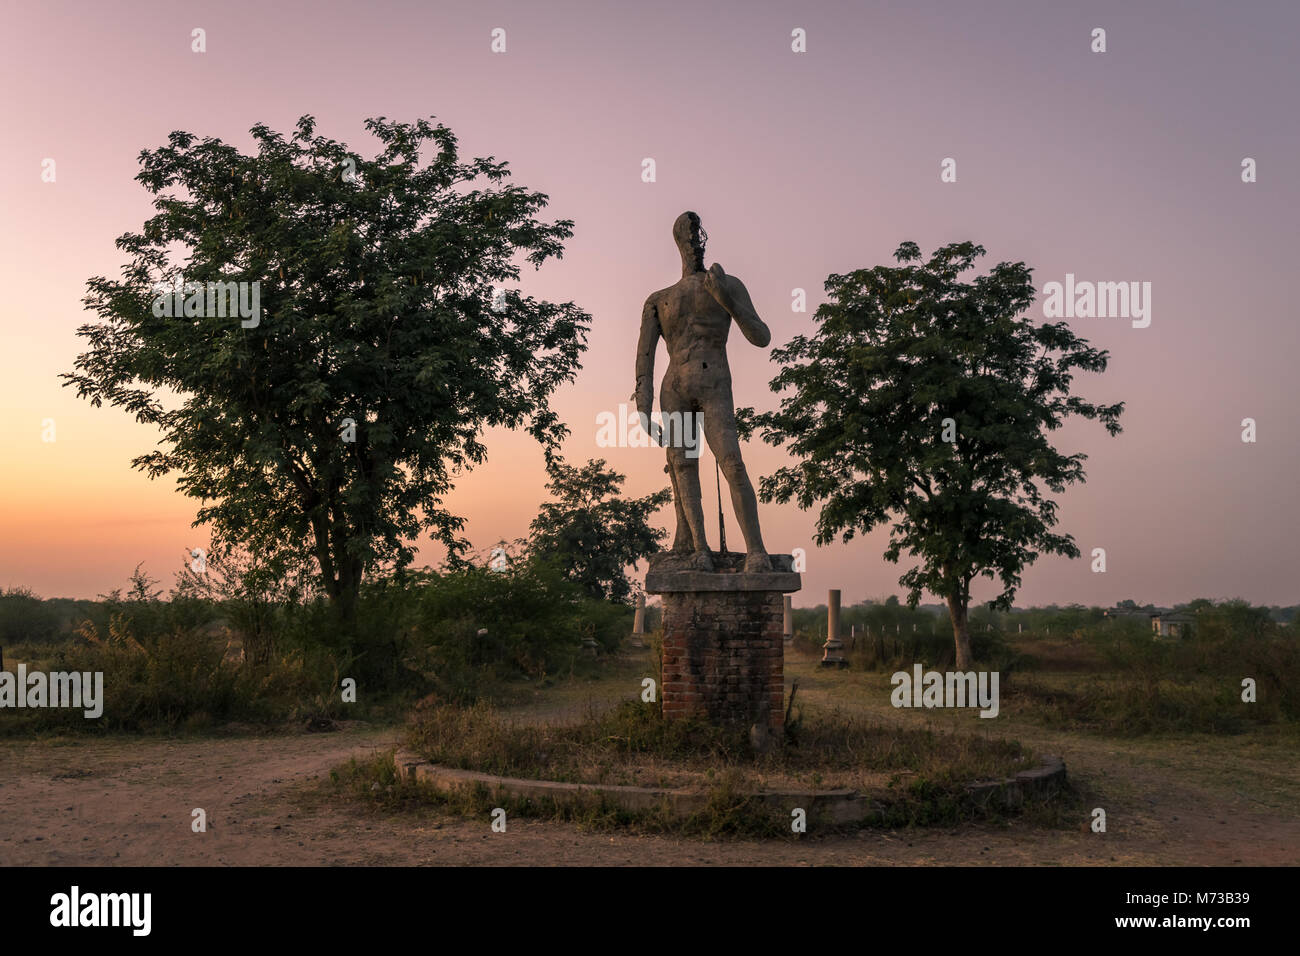 Abounded Sculpture at haunting township taken at Ahmedabad city of Gujarat, India. - Stock Image